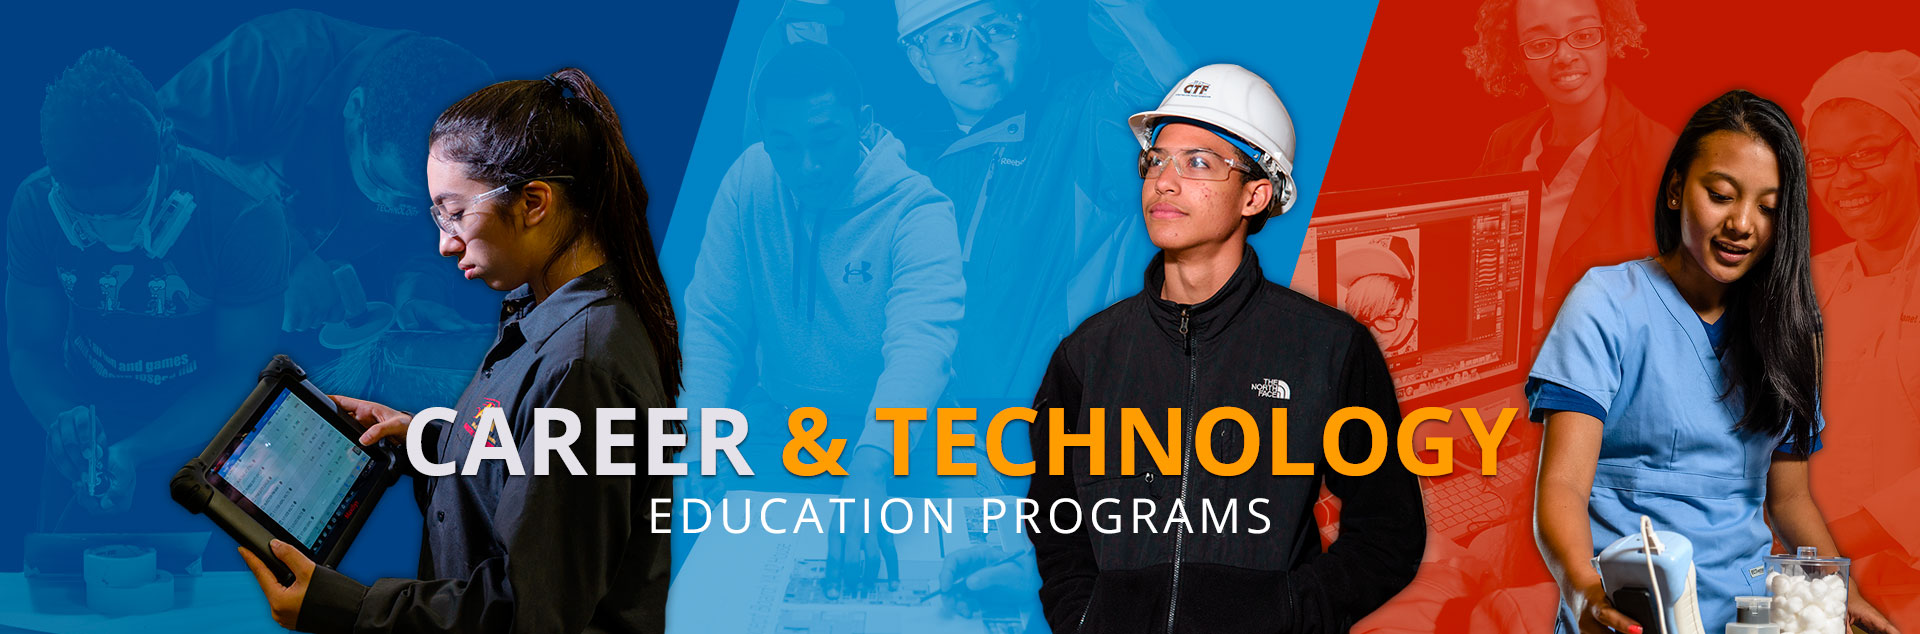 Career and Technology Education Programs at Edison High School (MCPS)